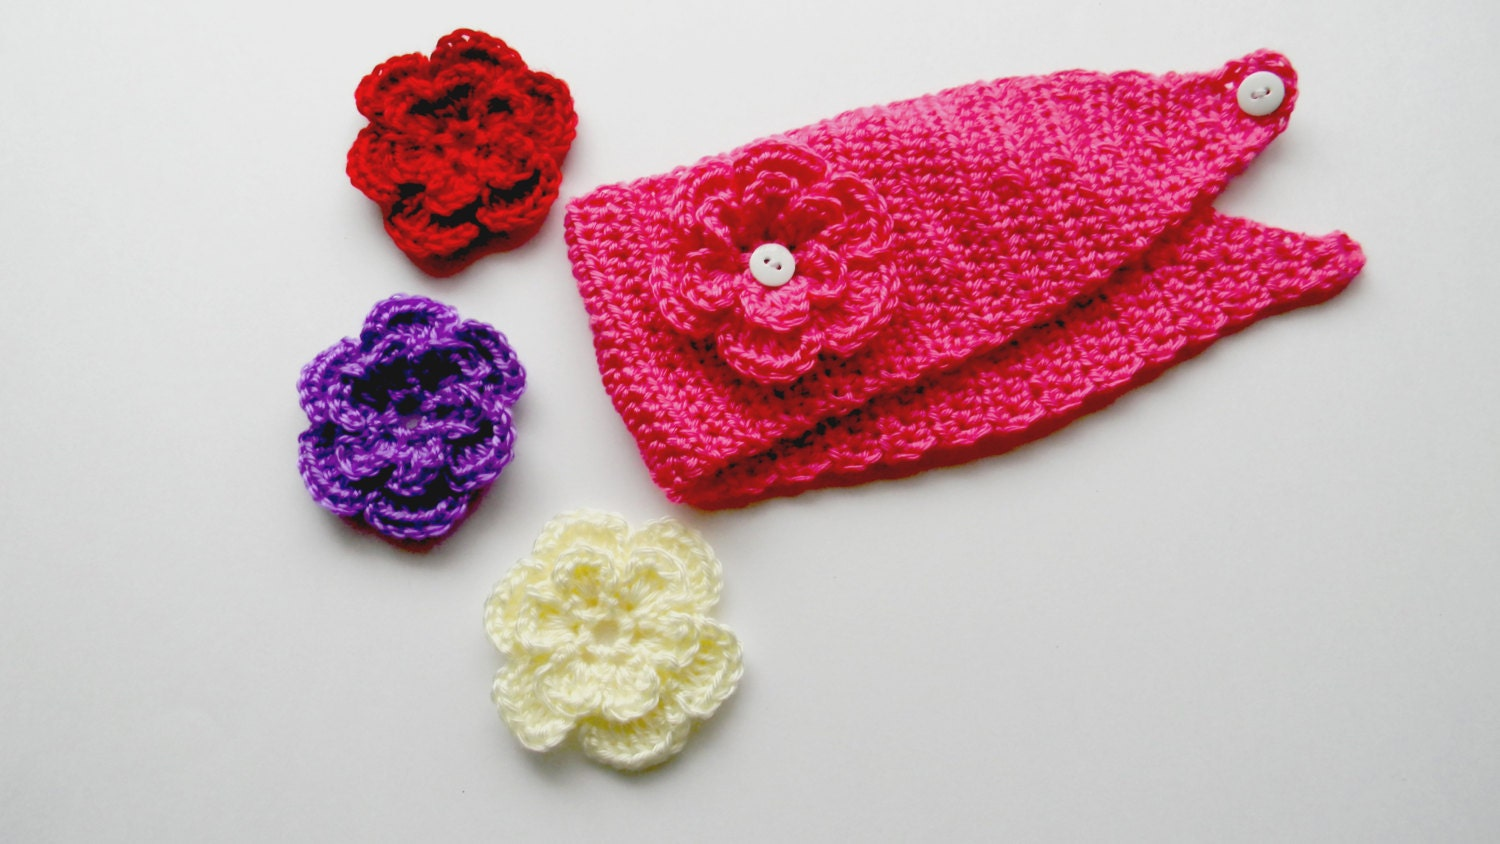 Crochet Patterns Head Warmers : Crochet pattern: Headband ear warmer Head wrap Ear by Leesorigami